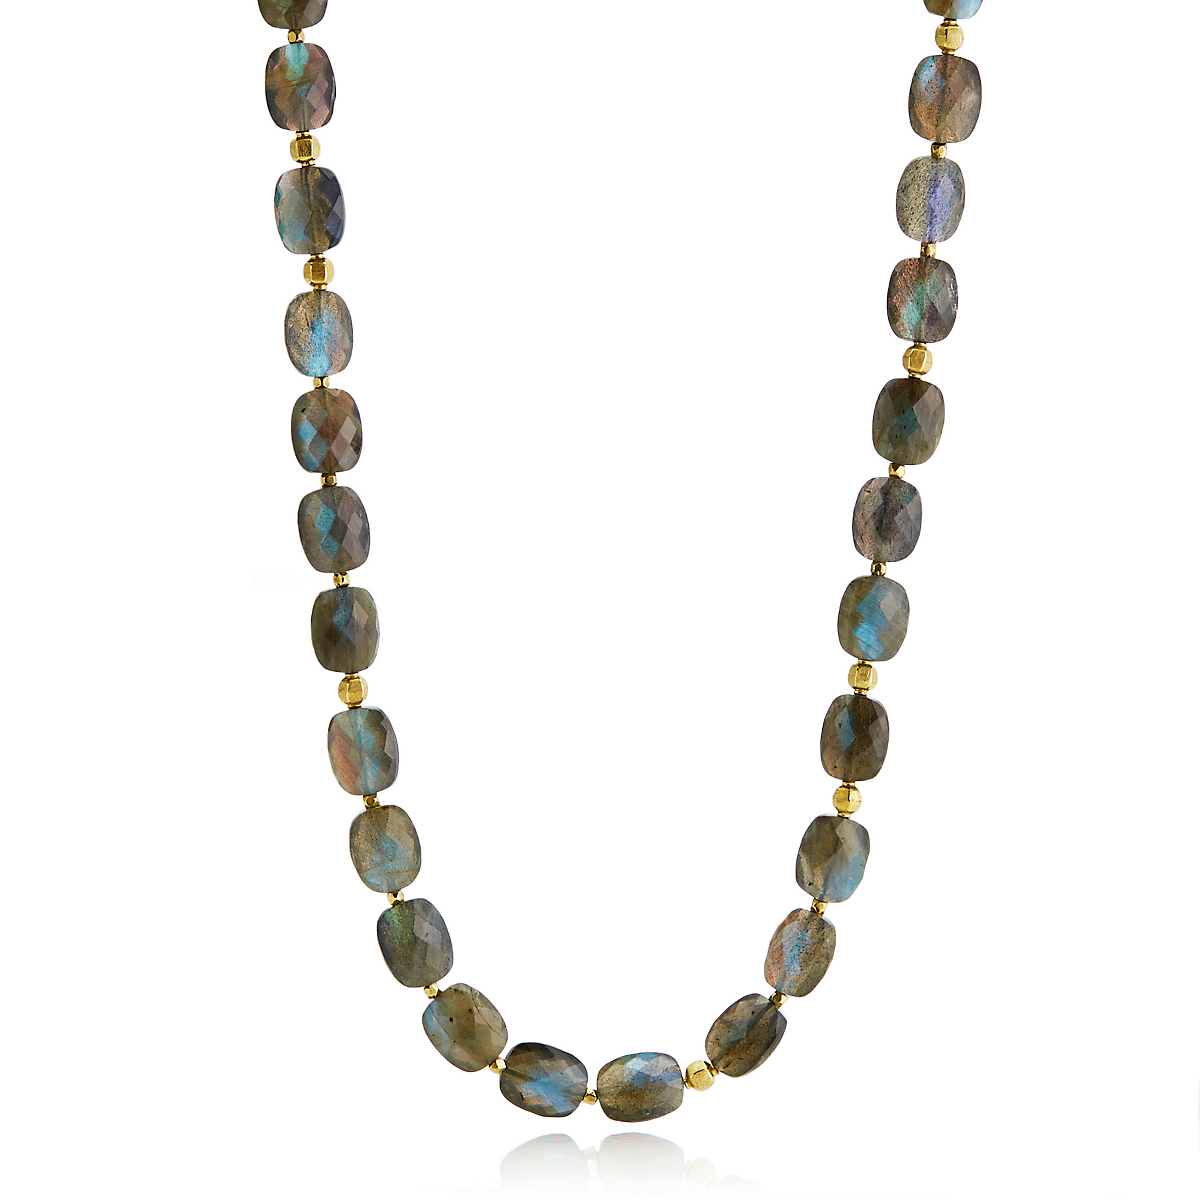 Barbara Heinrich Faceted Labradorite Long Necklace